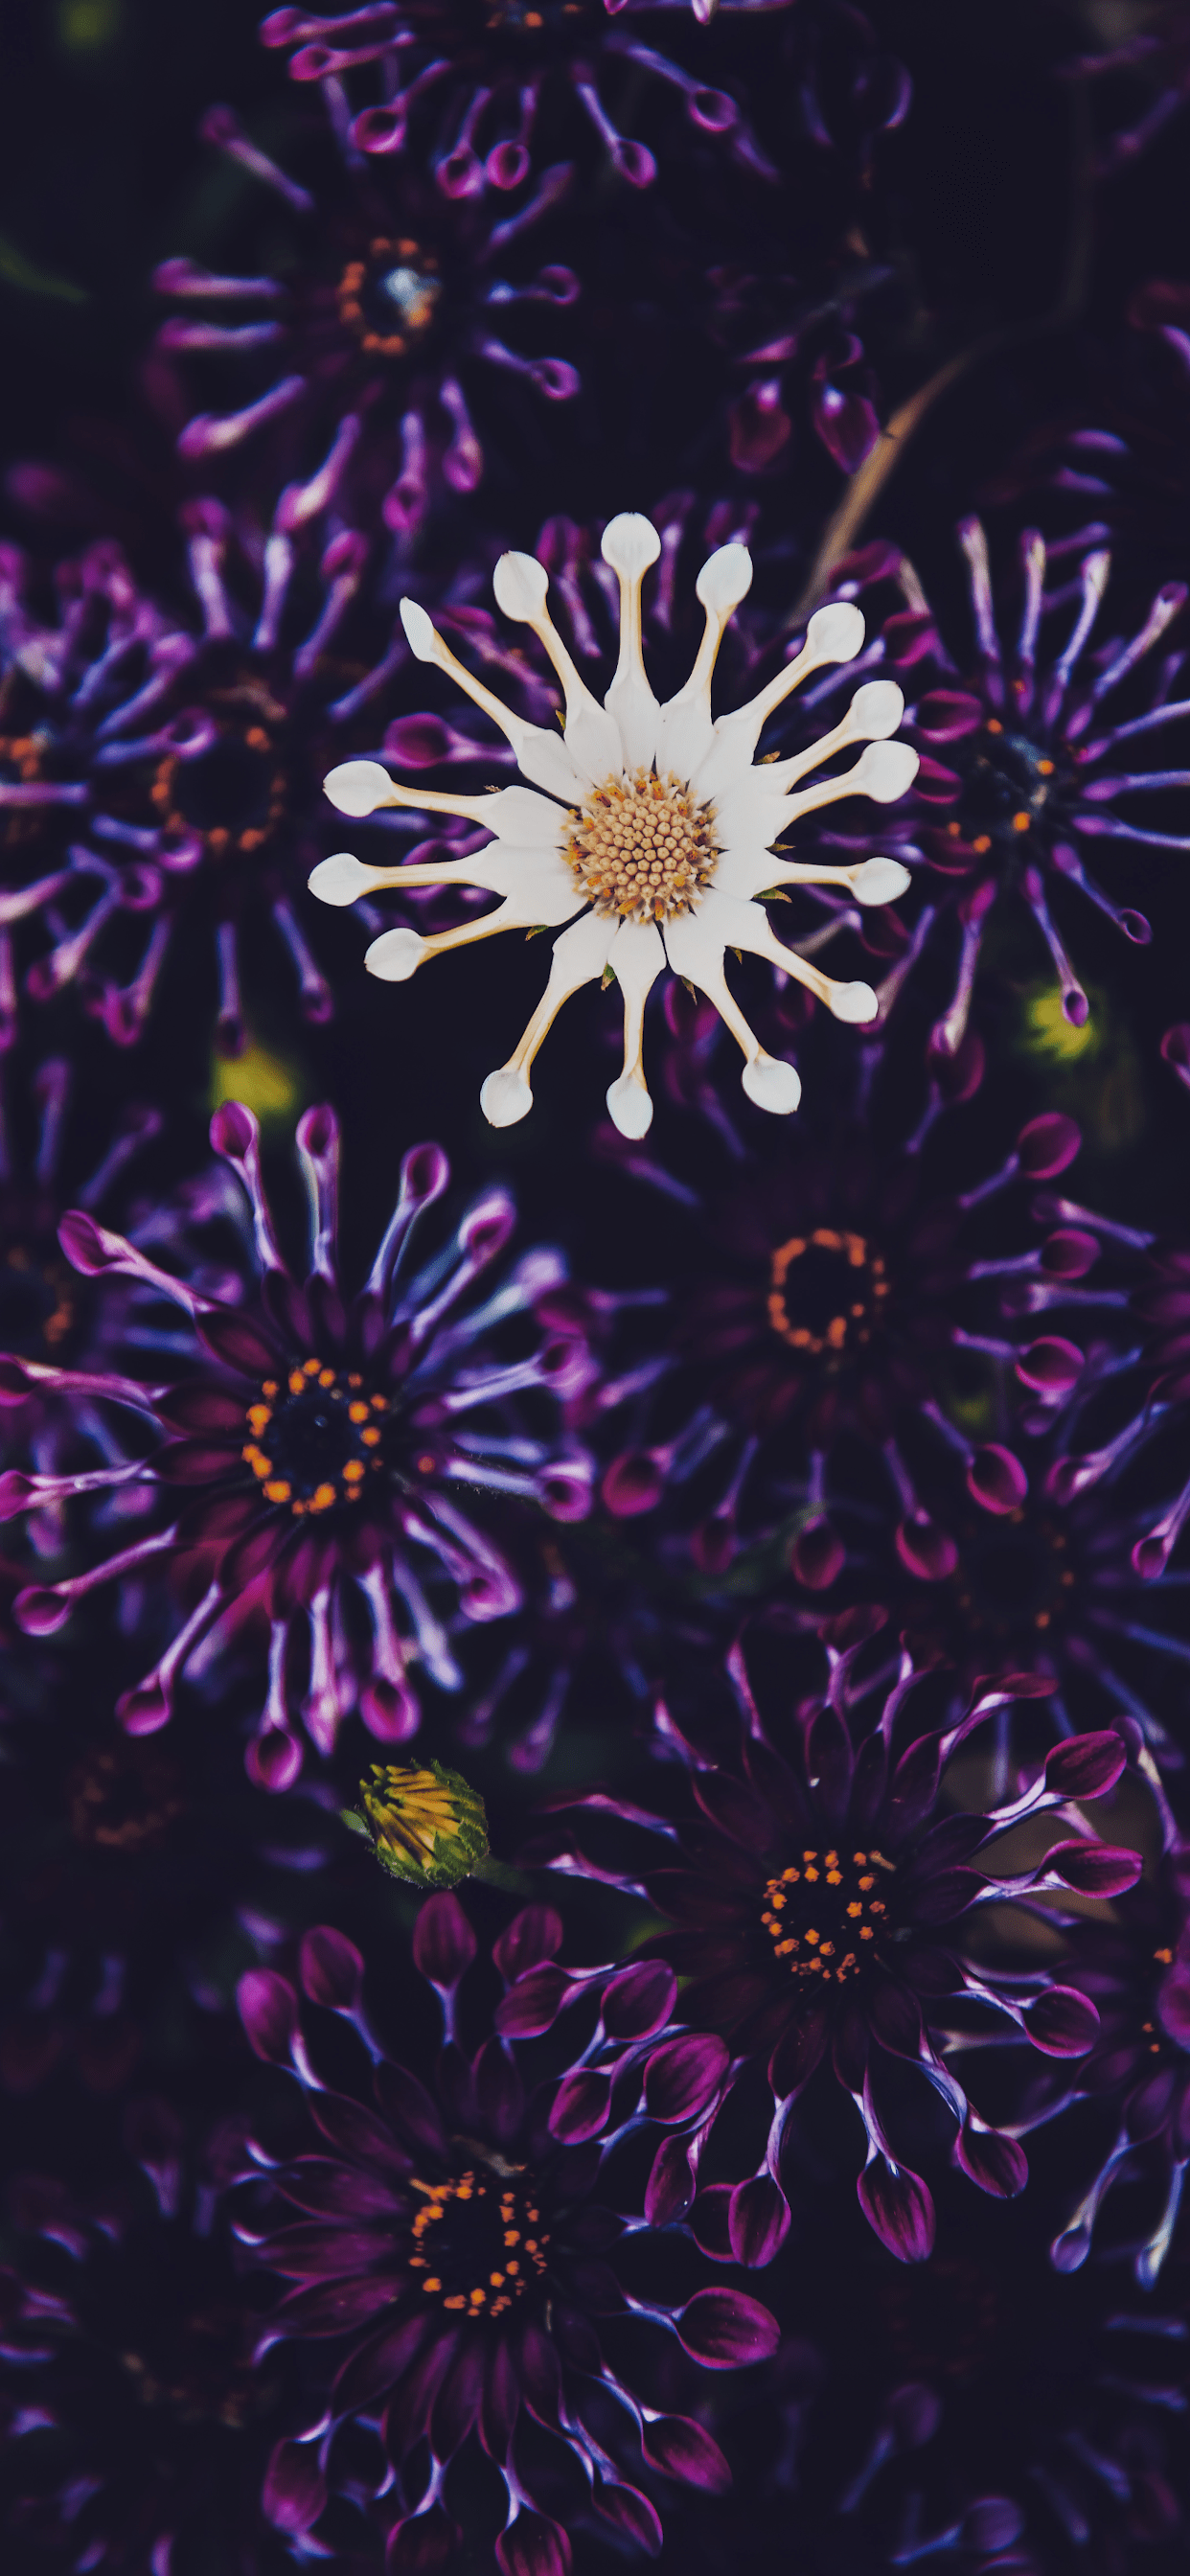 iPhone wallpapers flowers whirligig osteospermum Flowers